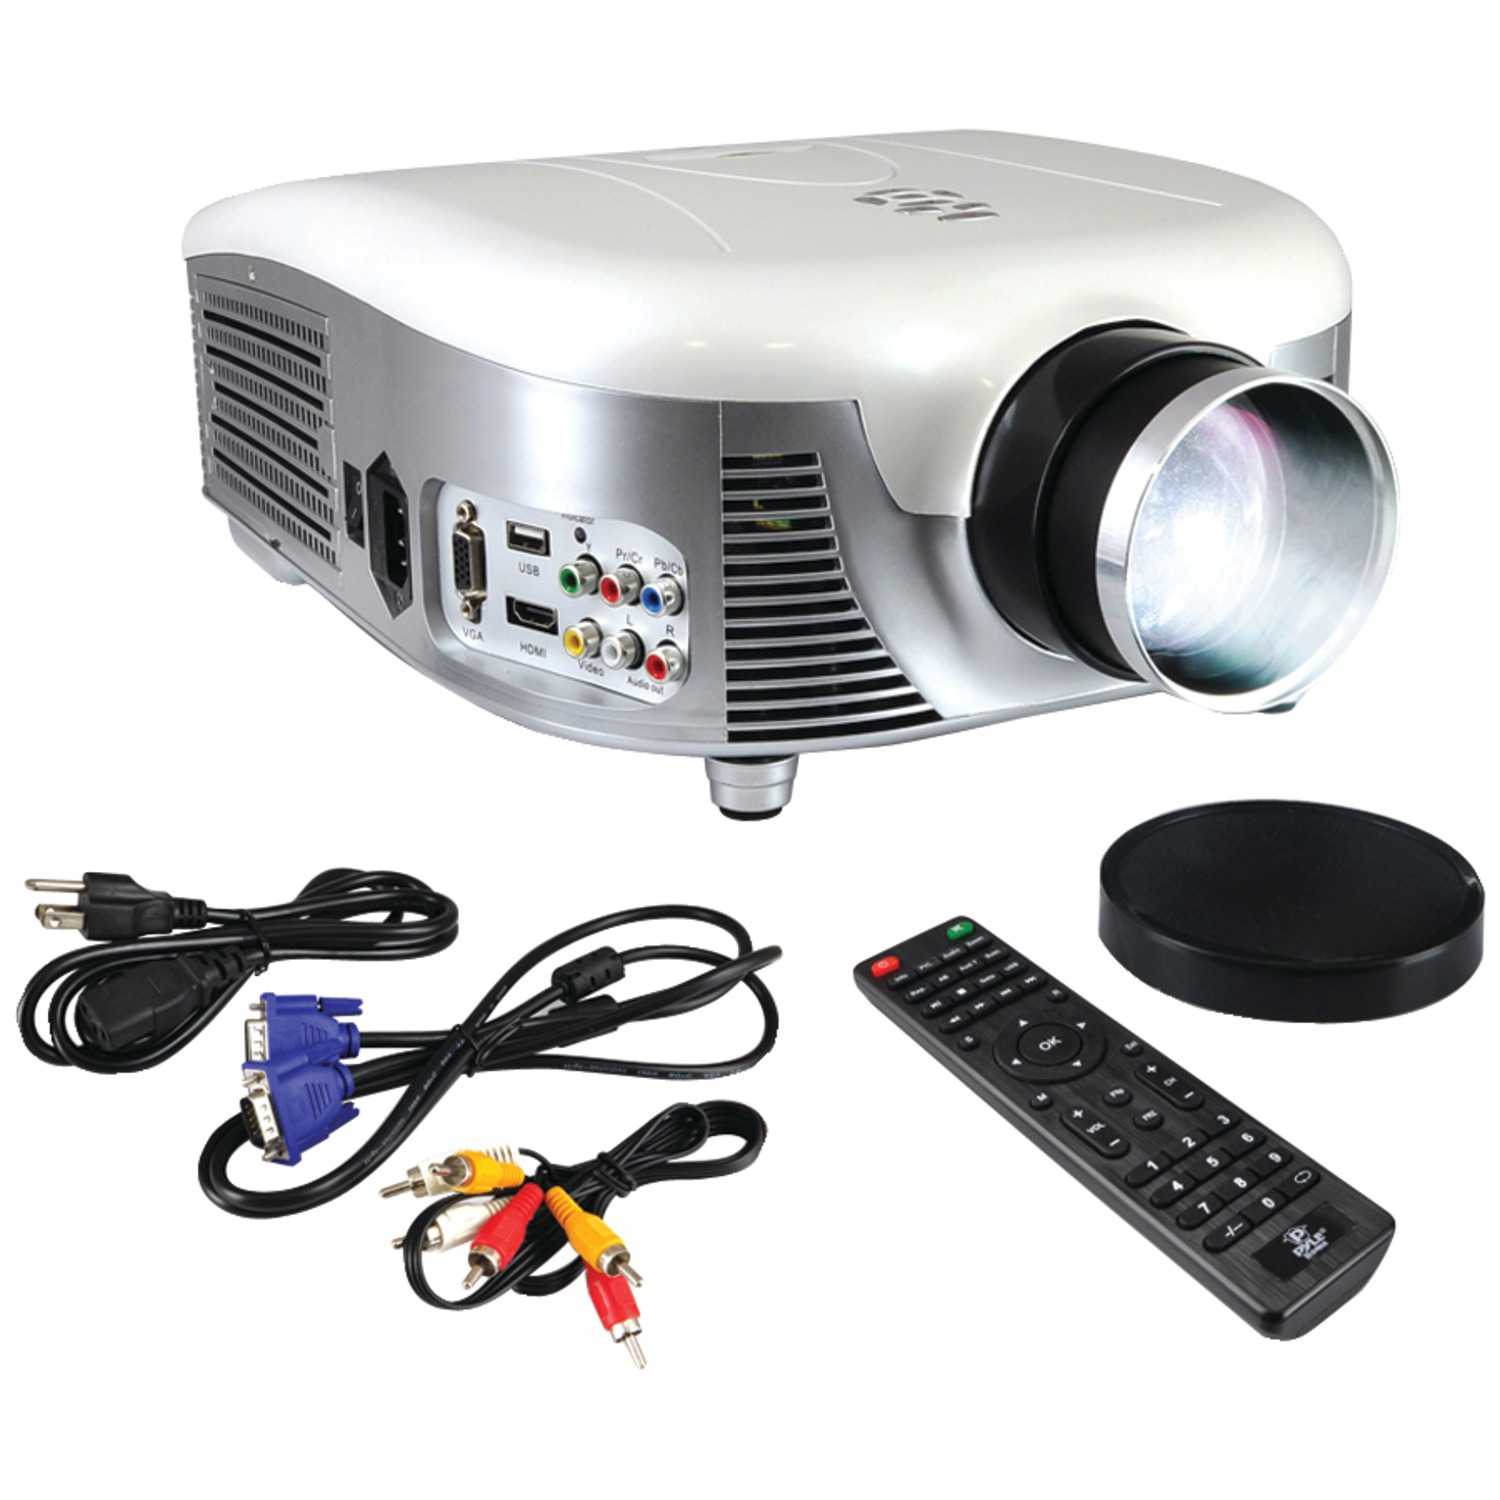 Pyle Home Prjd907 Widescreen 1080p Digital Multimedia Led Projector